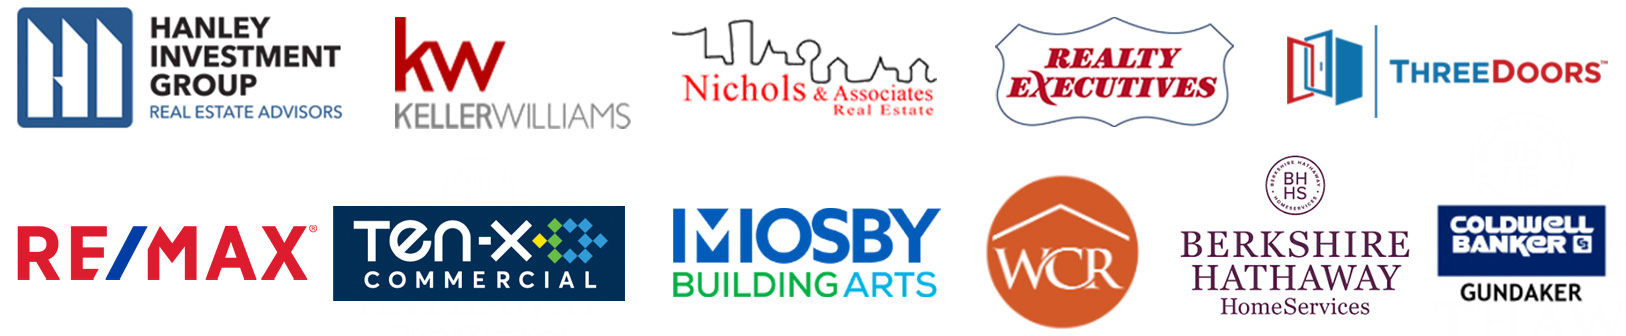 Real Estate & Commercial brands that have worked with Missouri Home Tours include Keller Williams Realty, Nichols & Associates Real Estate, Realty Executives, RE/MAX, Worth Clark Realty, Berkshire Hathaway HomeServices, Coldwell Banker / Coldwell Banker Gundaker, Hanley Investment Group, Mosby Building Arts, & Ten-X Commercial.